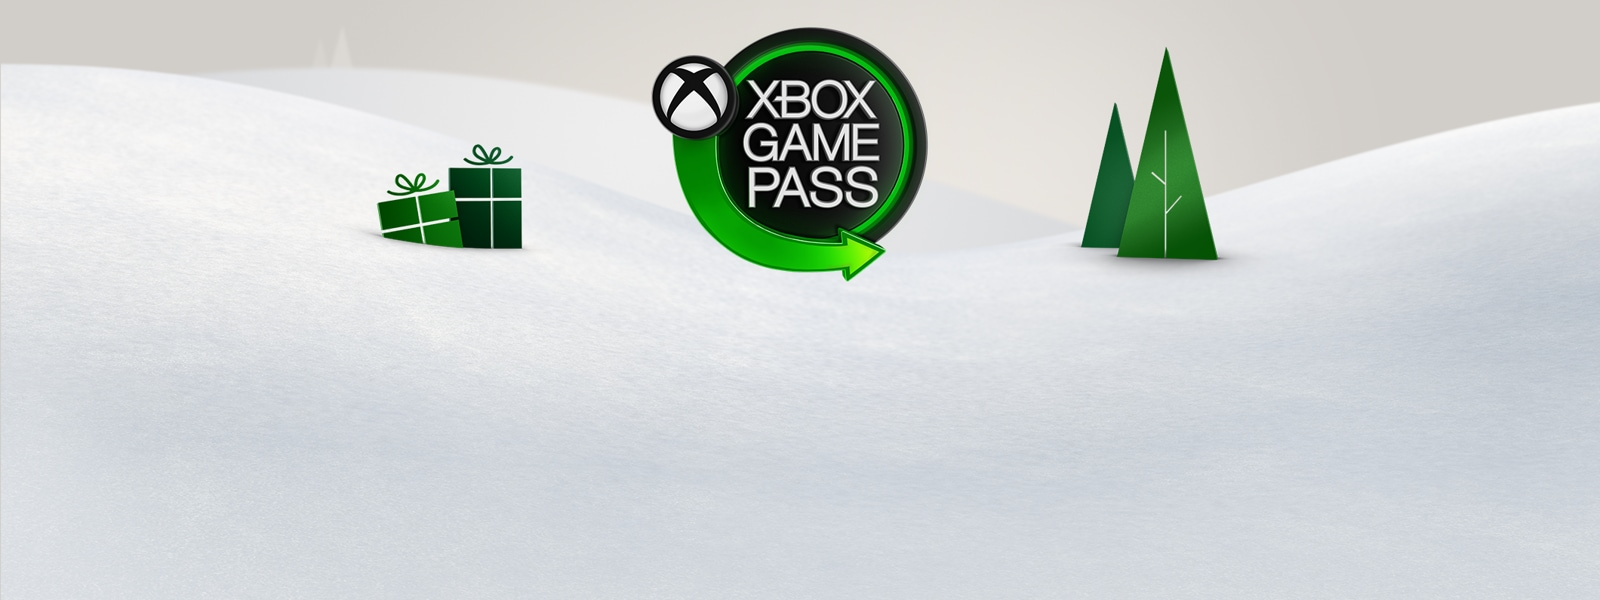 Het Xbox Game Pass-logo